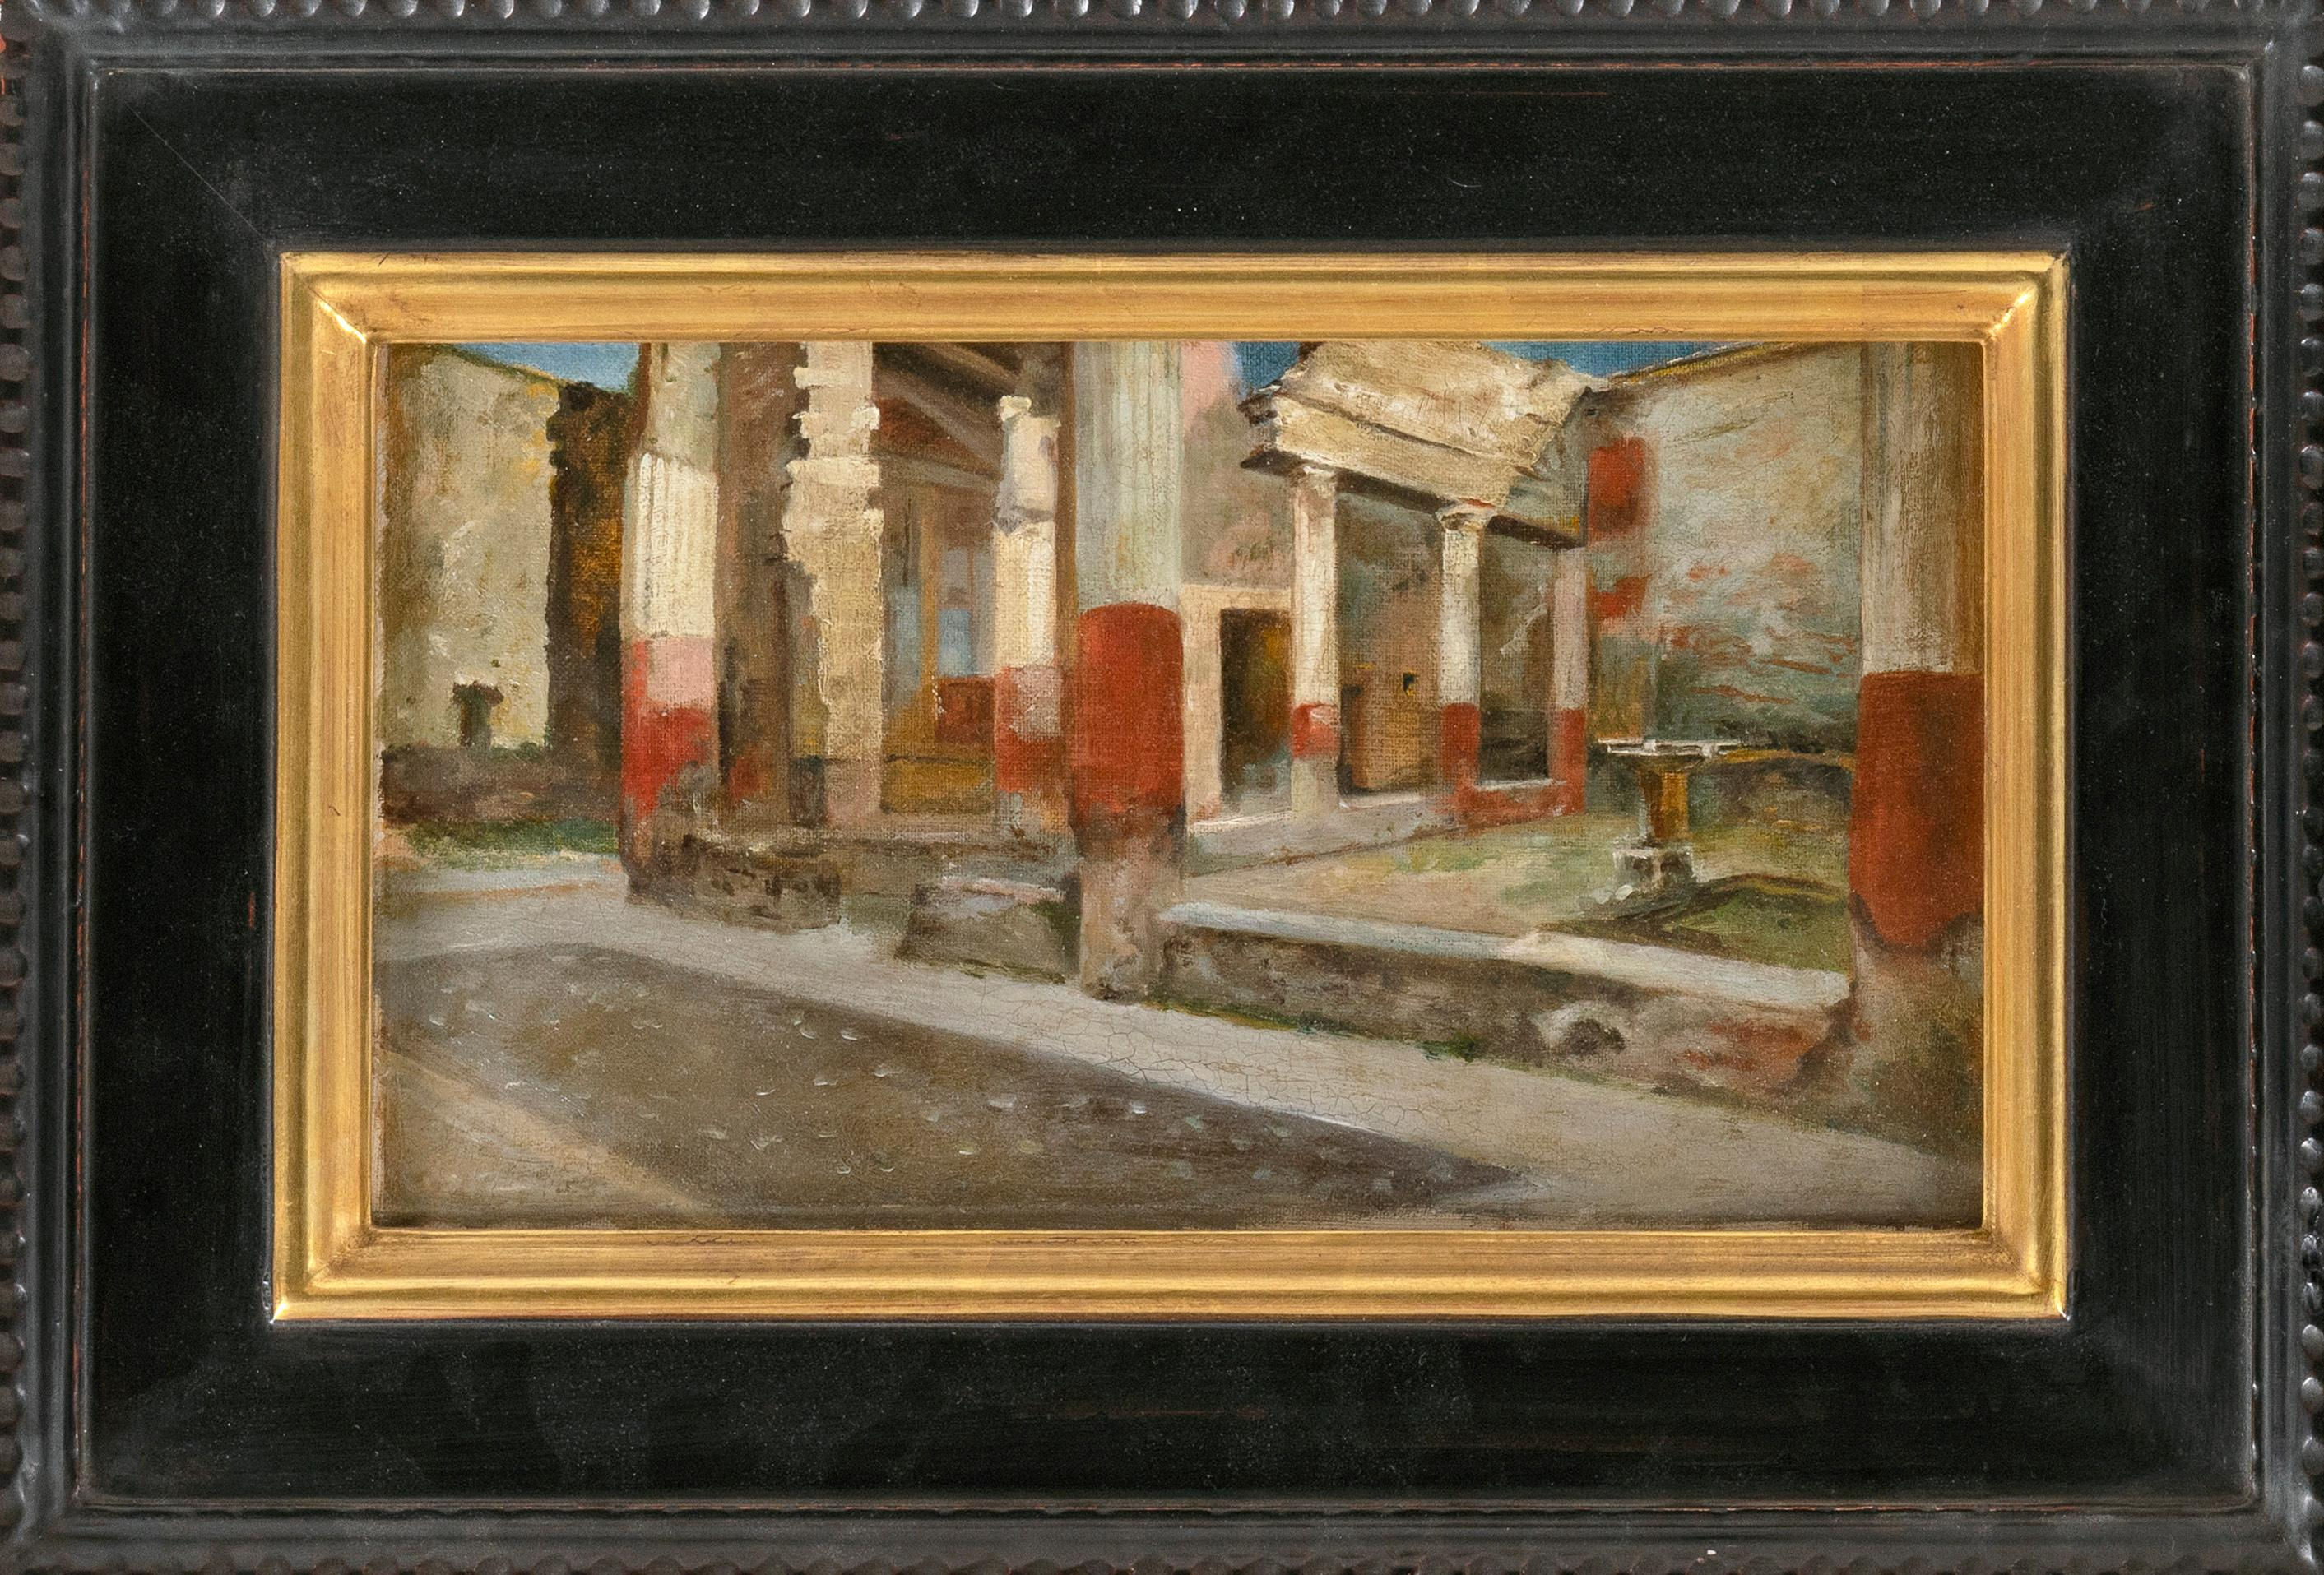 """AMERICAN SCHOOL (Late 19th/Early 20th Century), City ruins, possibly Pompeii., Oil on canvas, 8"""" x 14"""". Framed 13.5"""" x 19.5""""."""